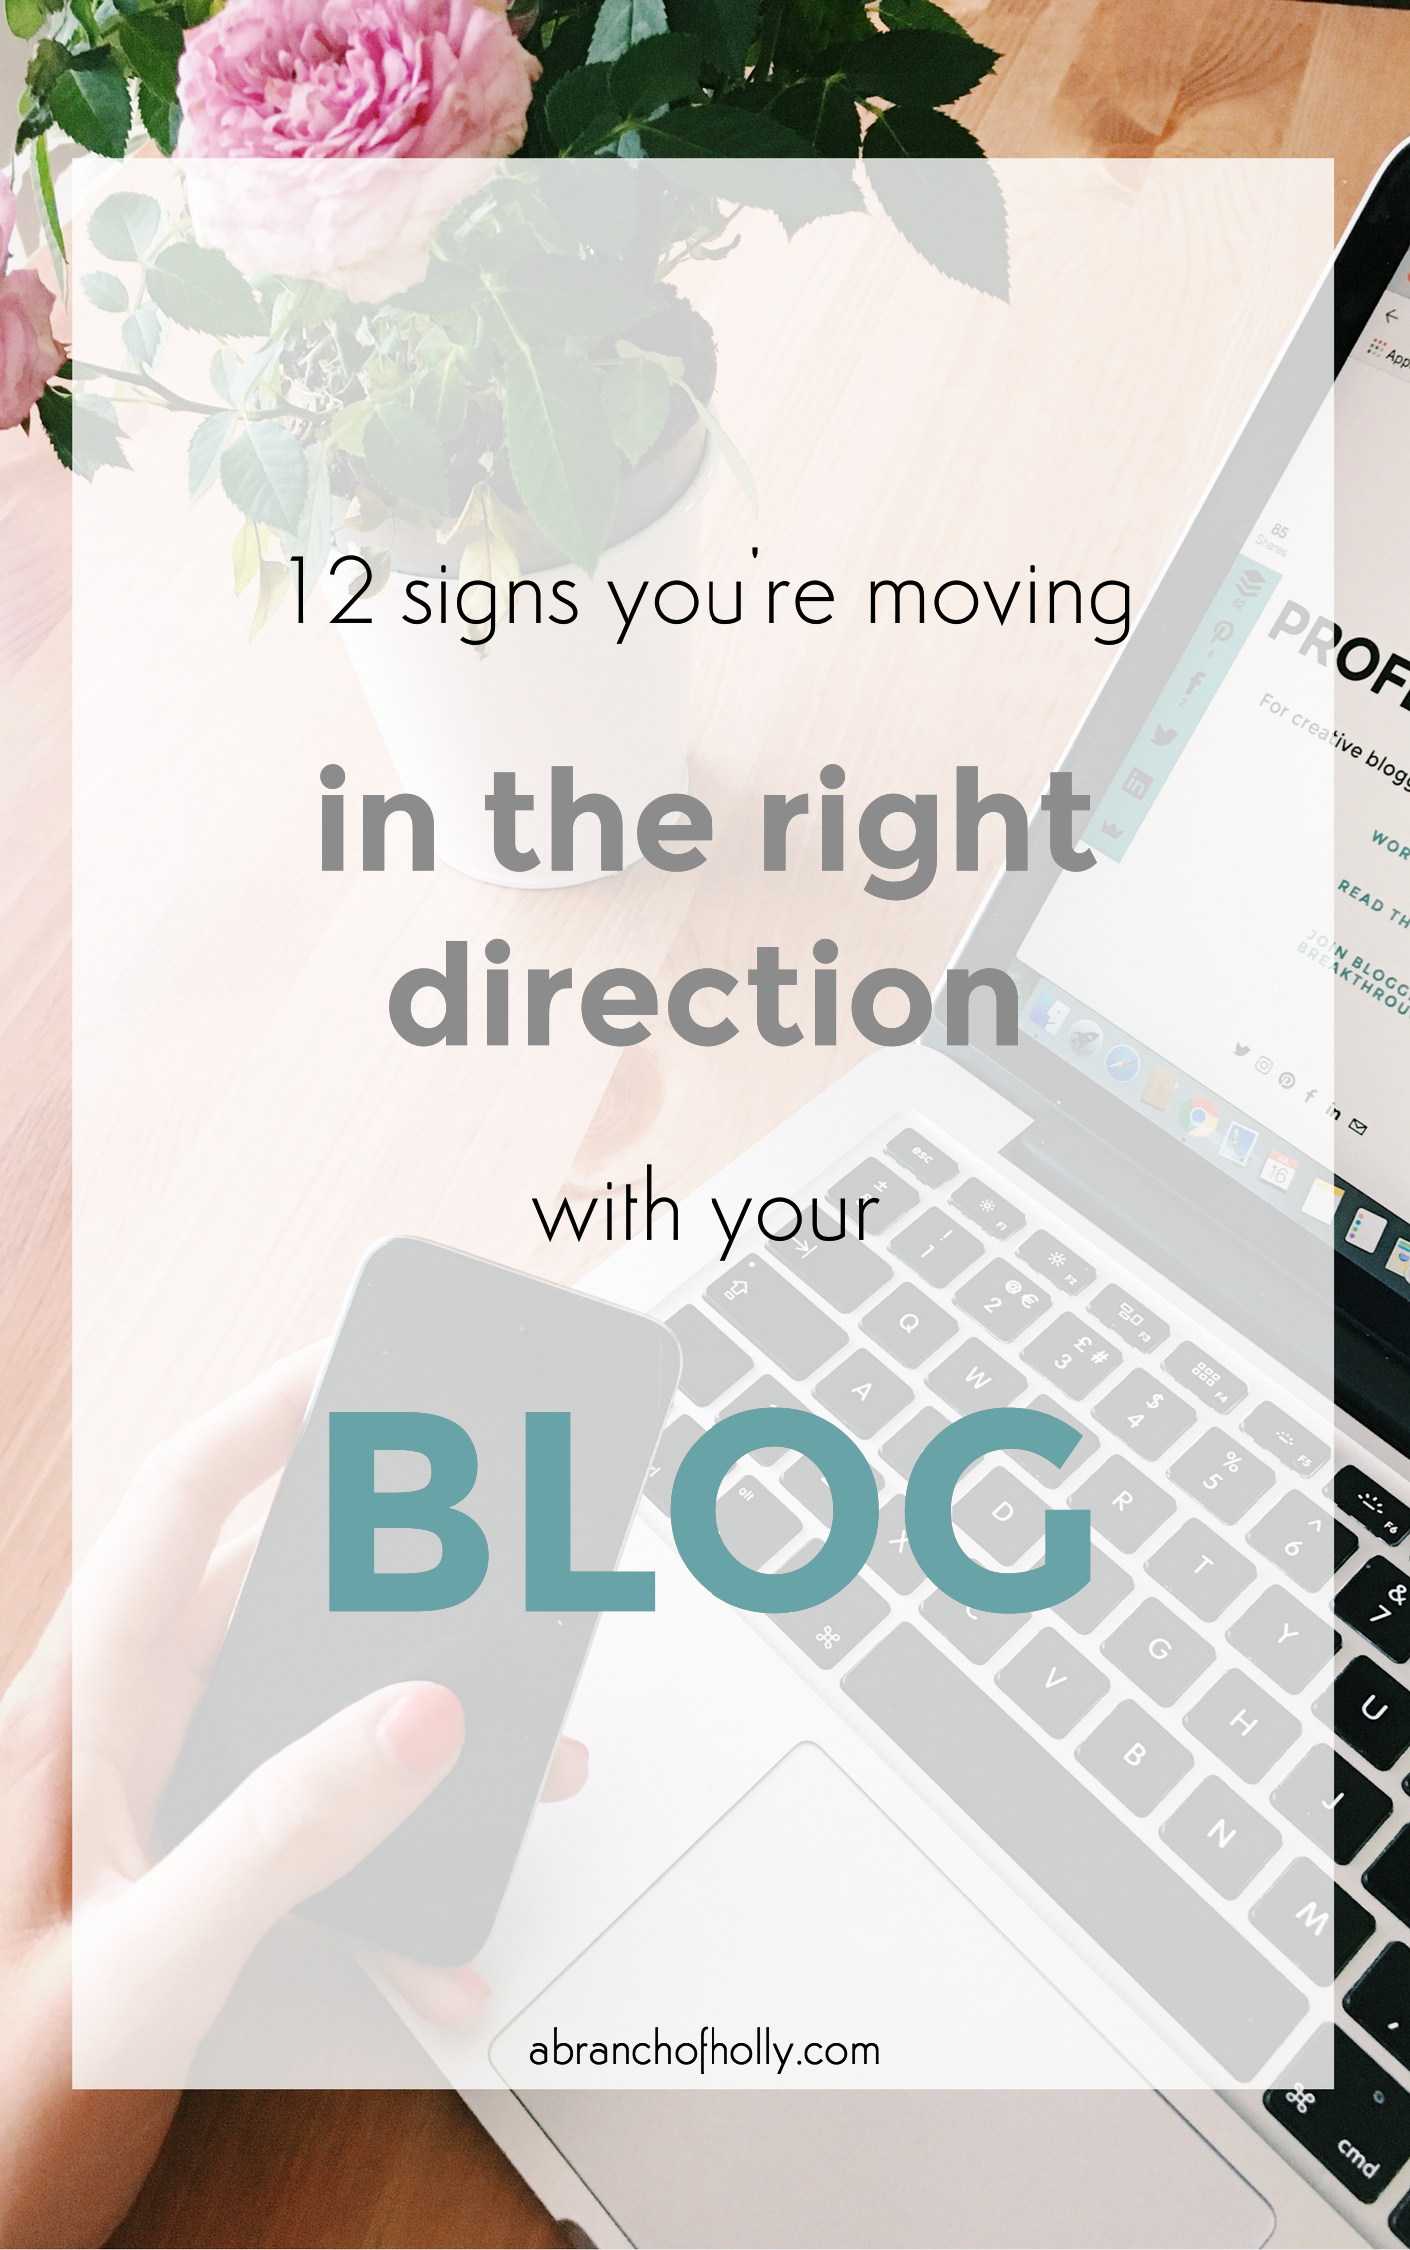 12 signs you're moving in the right direction with your blog